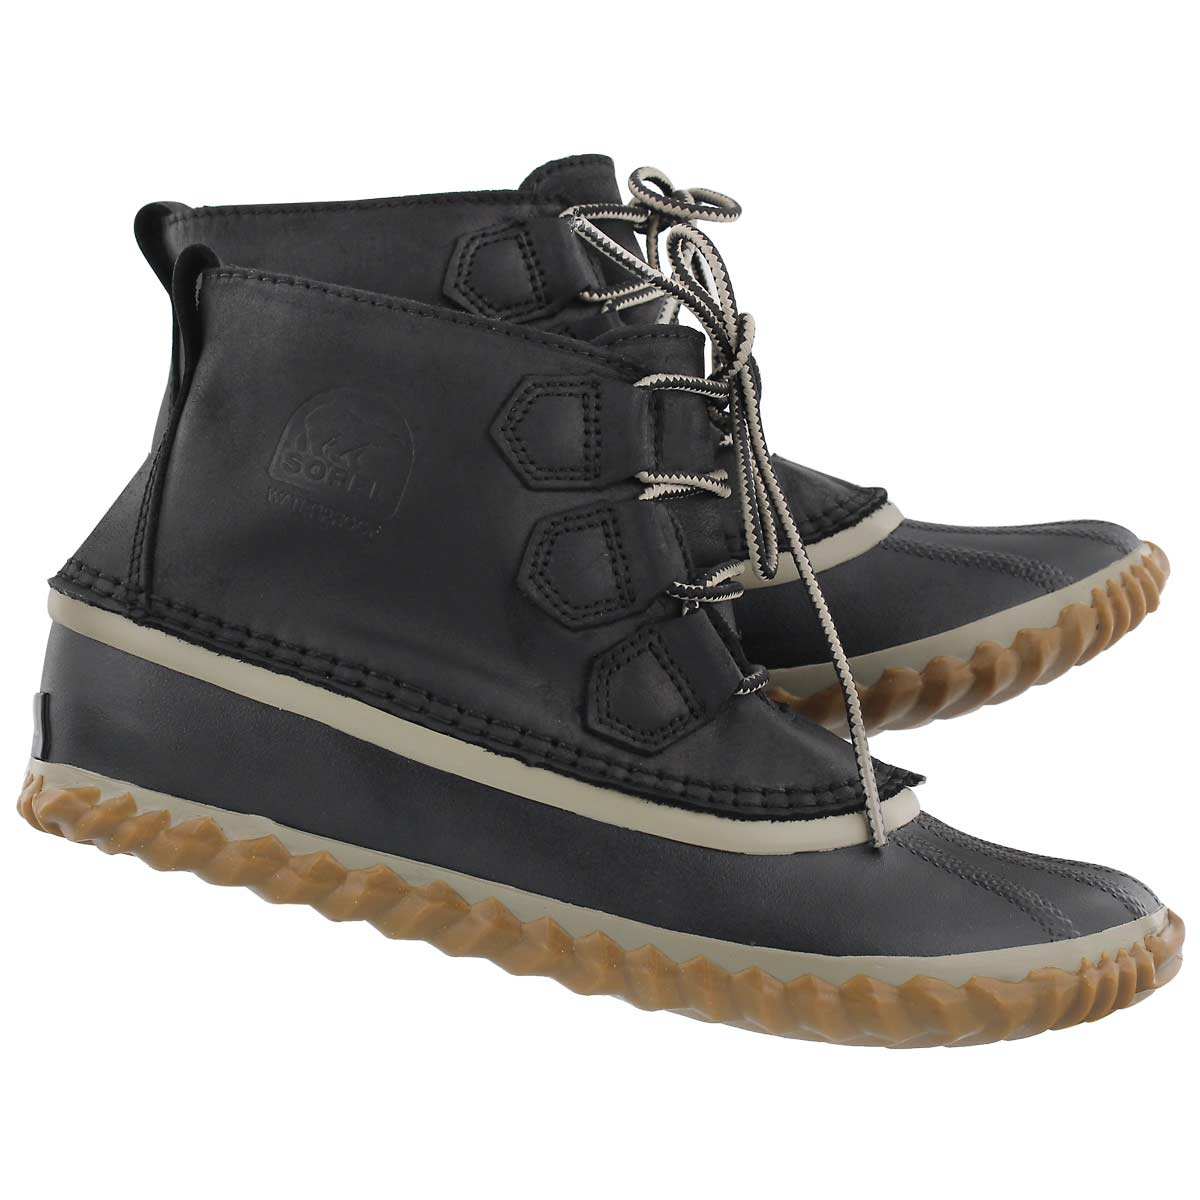 Lds Out'N About Leather blk/gry bootie